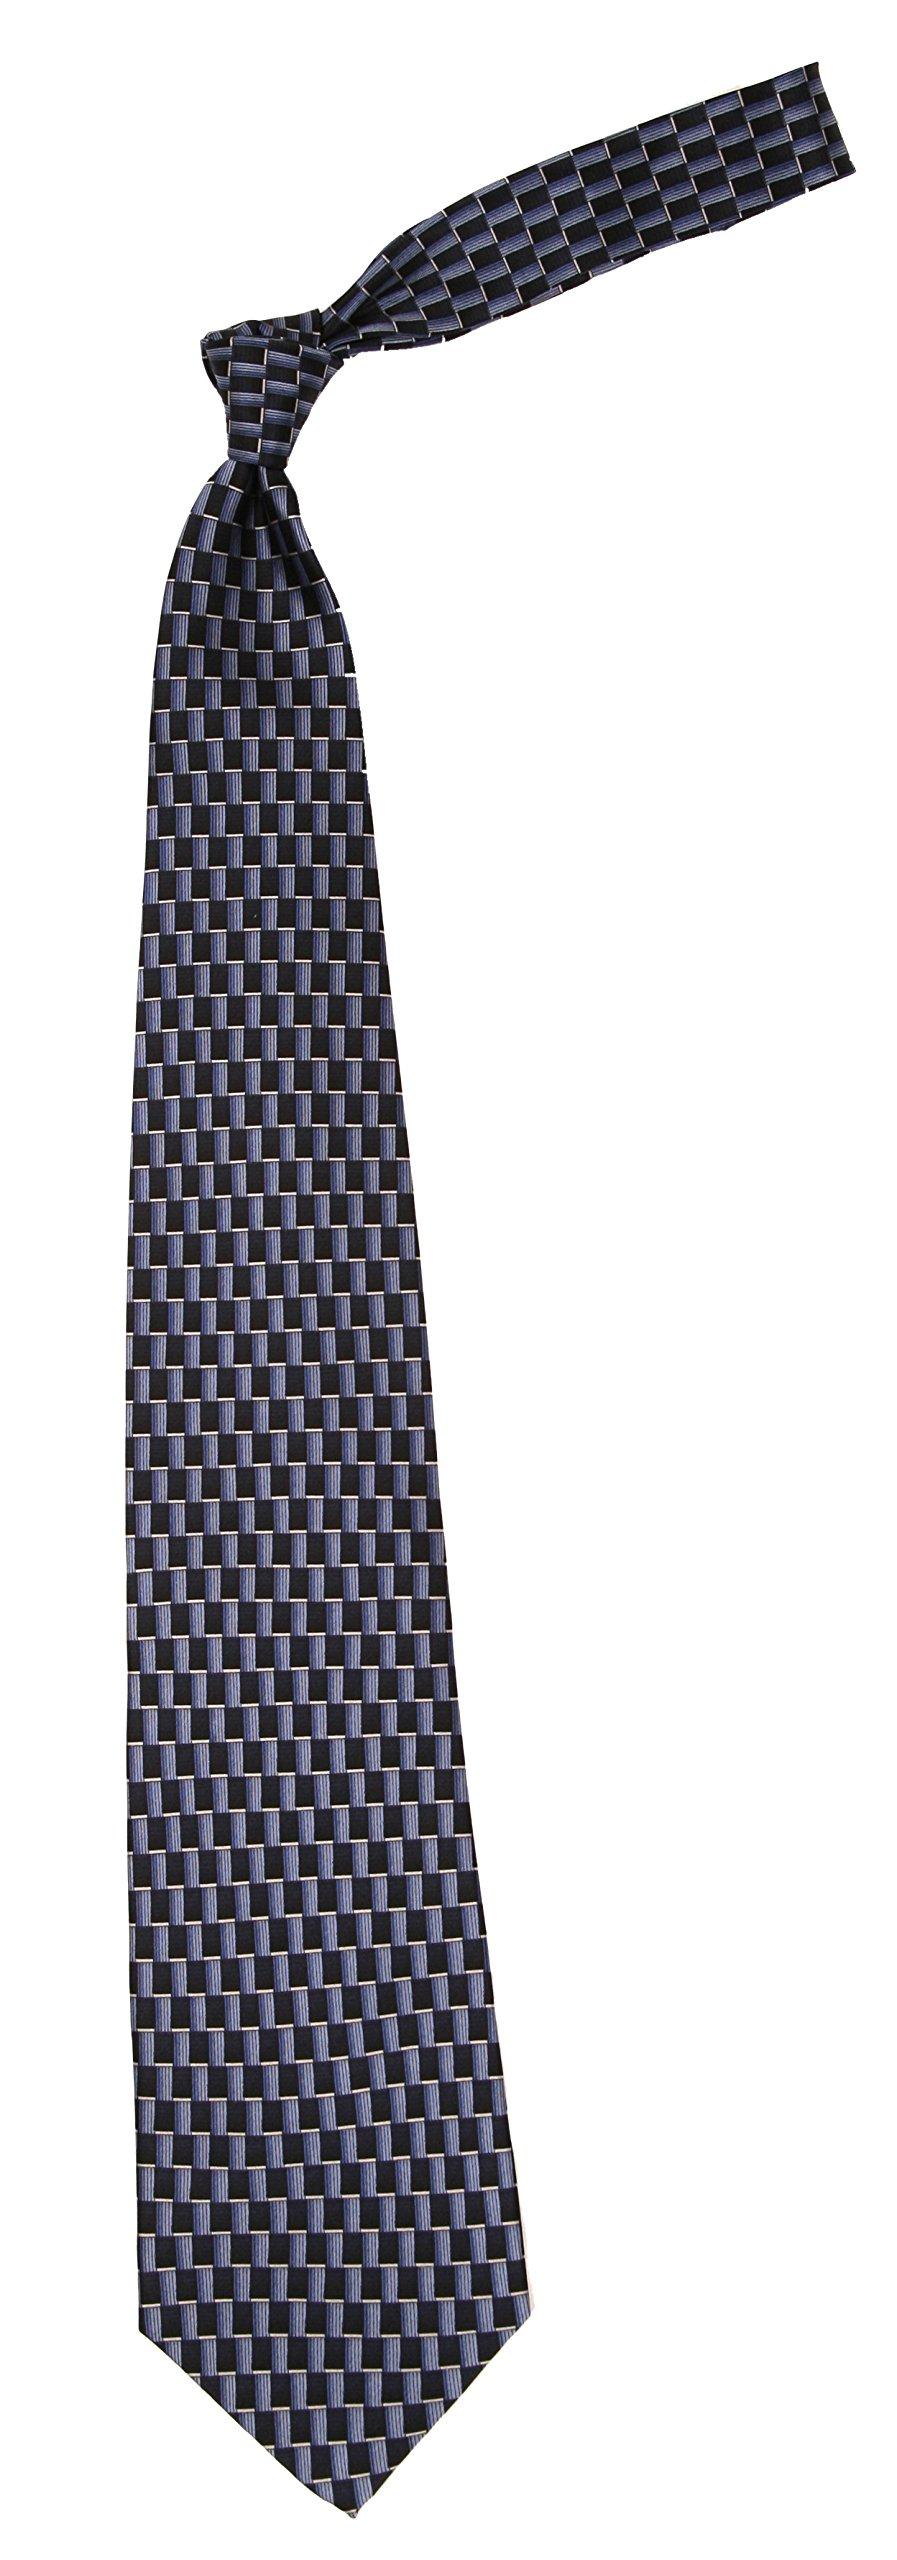 Love Lakeside-Men's 100% Silk, X-Long, Extra Long, Big and Tall Tie Navy Blue Classic